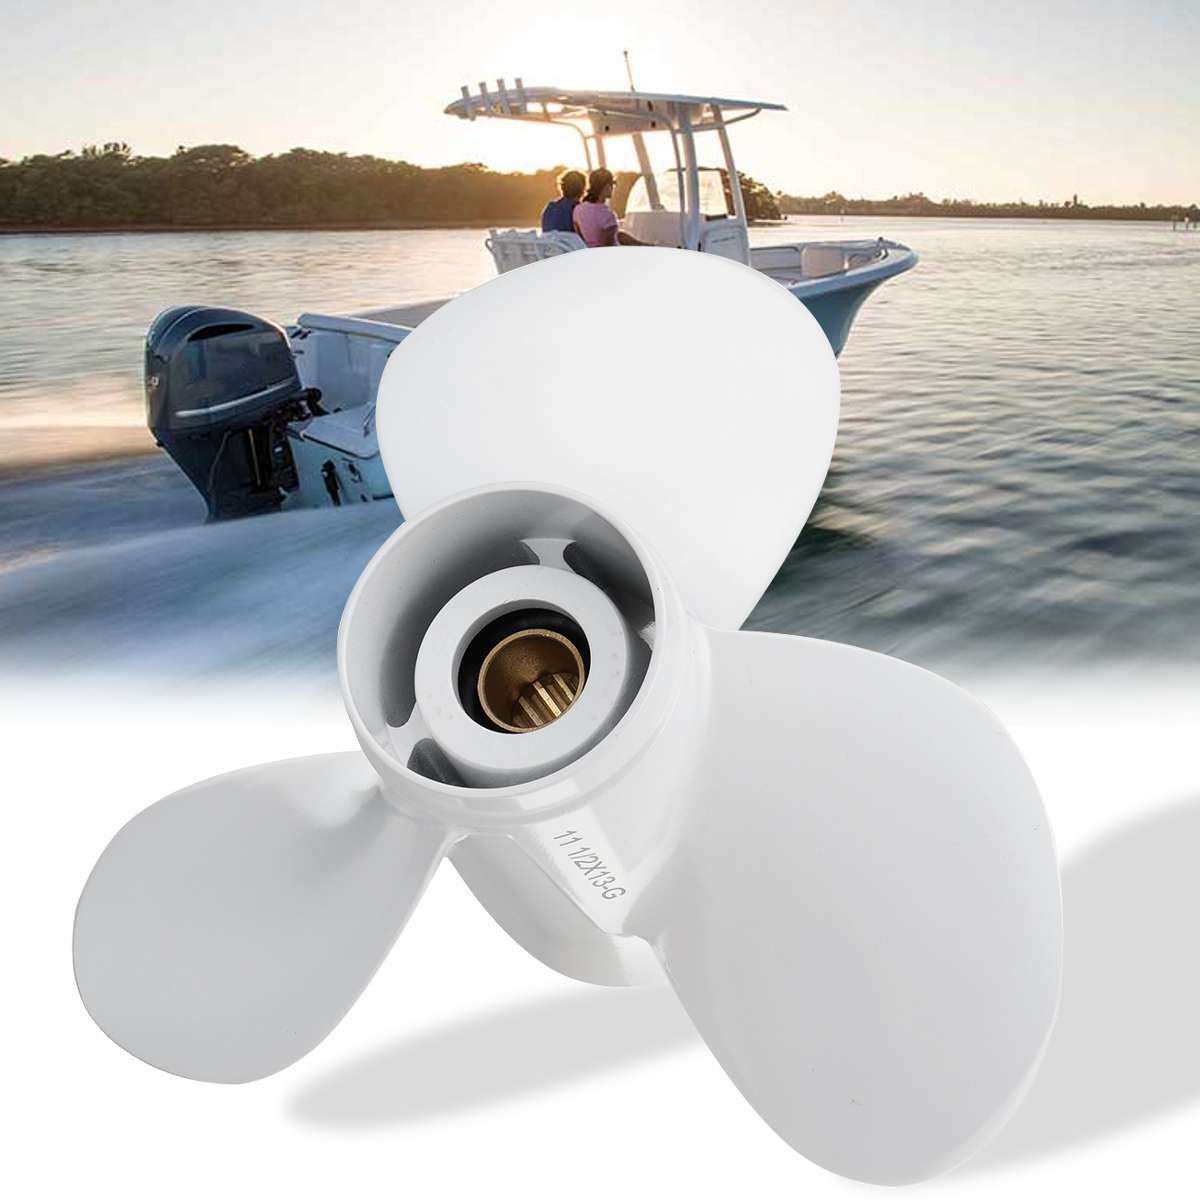 Boat Outboard Propeller 663-45974-02-98 For Yamaha 25-60HP  11 1/2 X 13 Aluminum 13 Spline Tooths R Rotation 3 Blades White